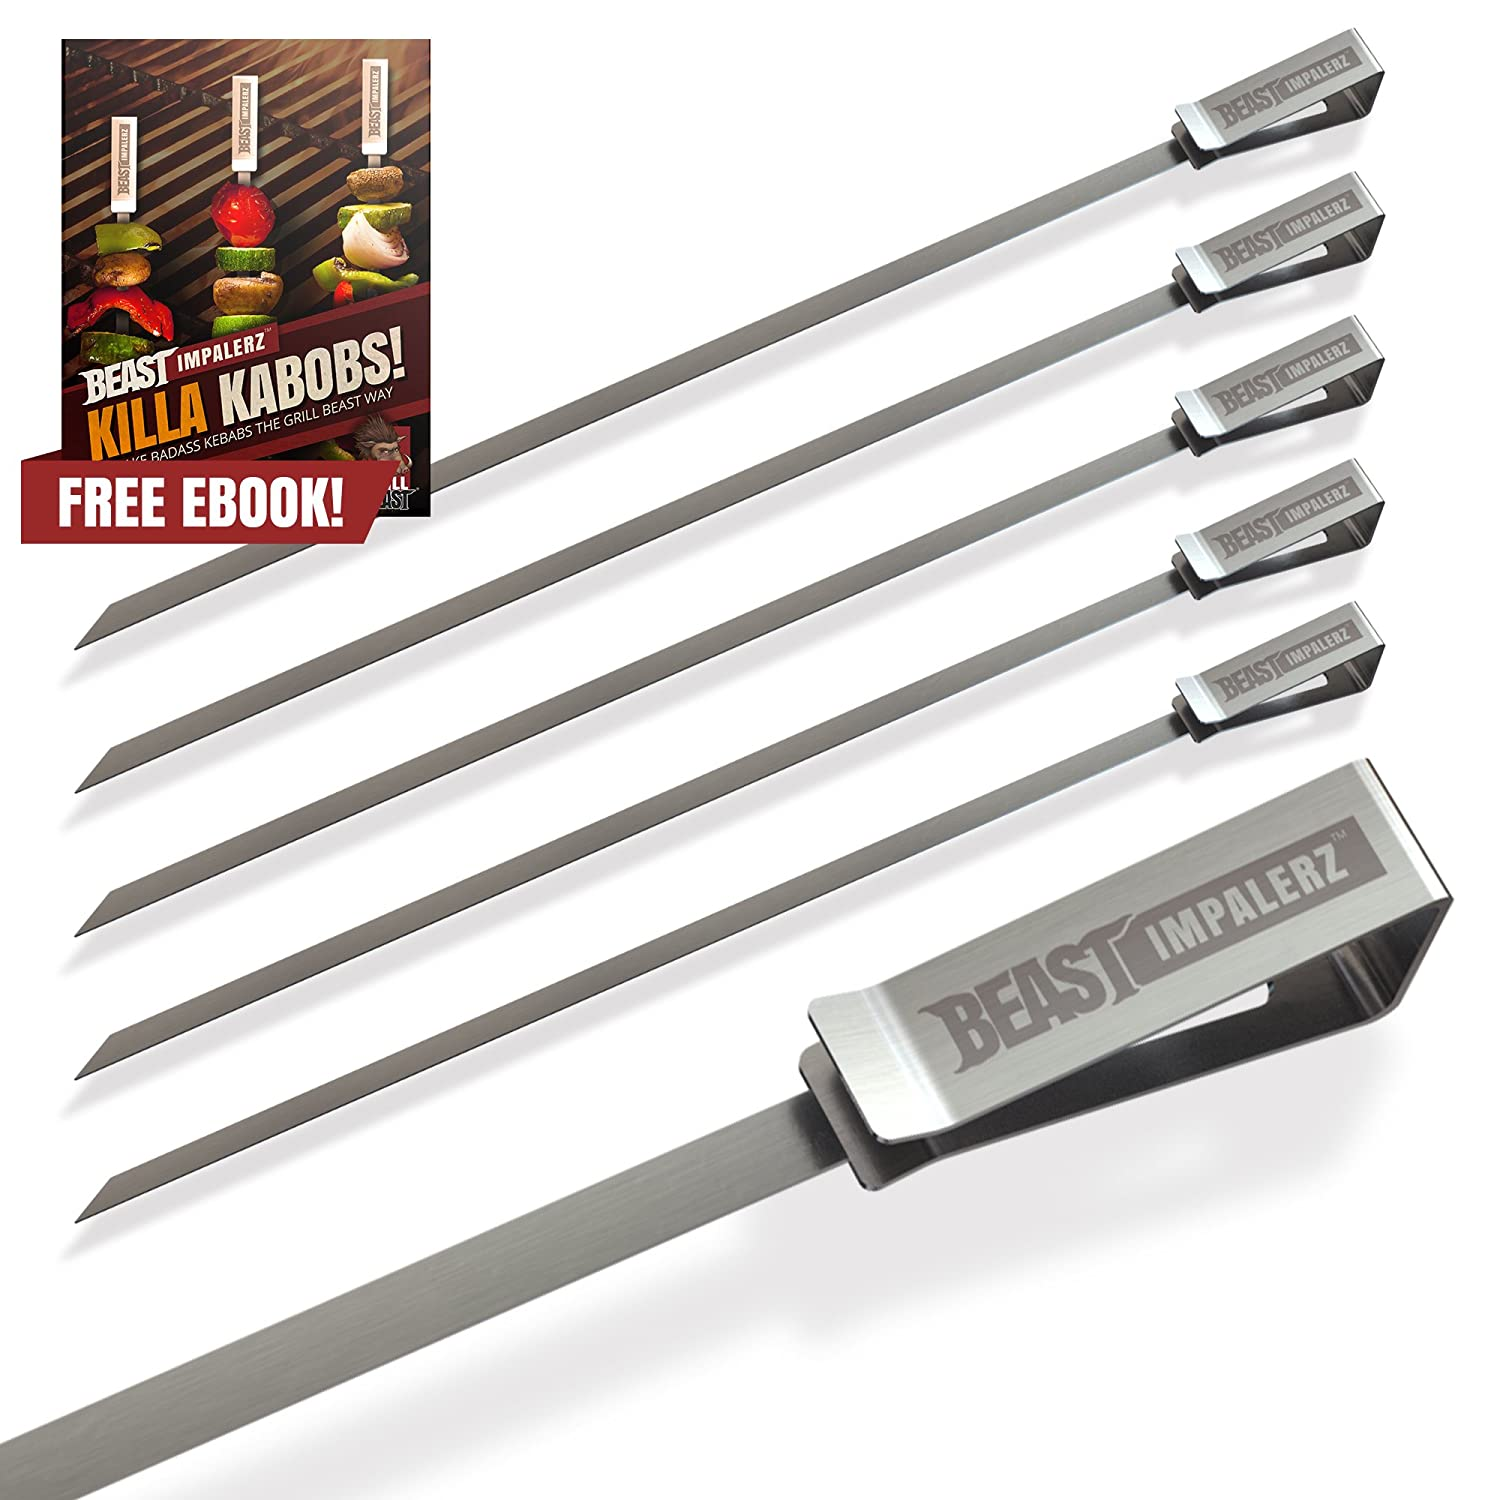 Grill Beast BBQ Skewers - 6 Reusable Flat Blade Stainless Steel with Sharp, Angled Points for Grilling Seafood, Vegetable, or Fruit Kebabs Beast Impalerz